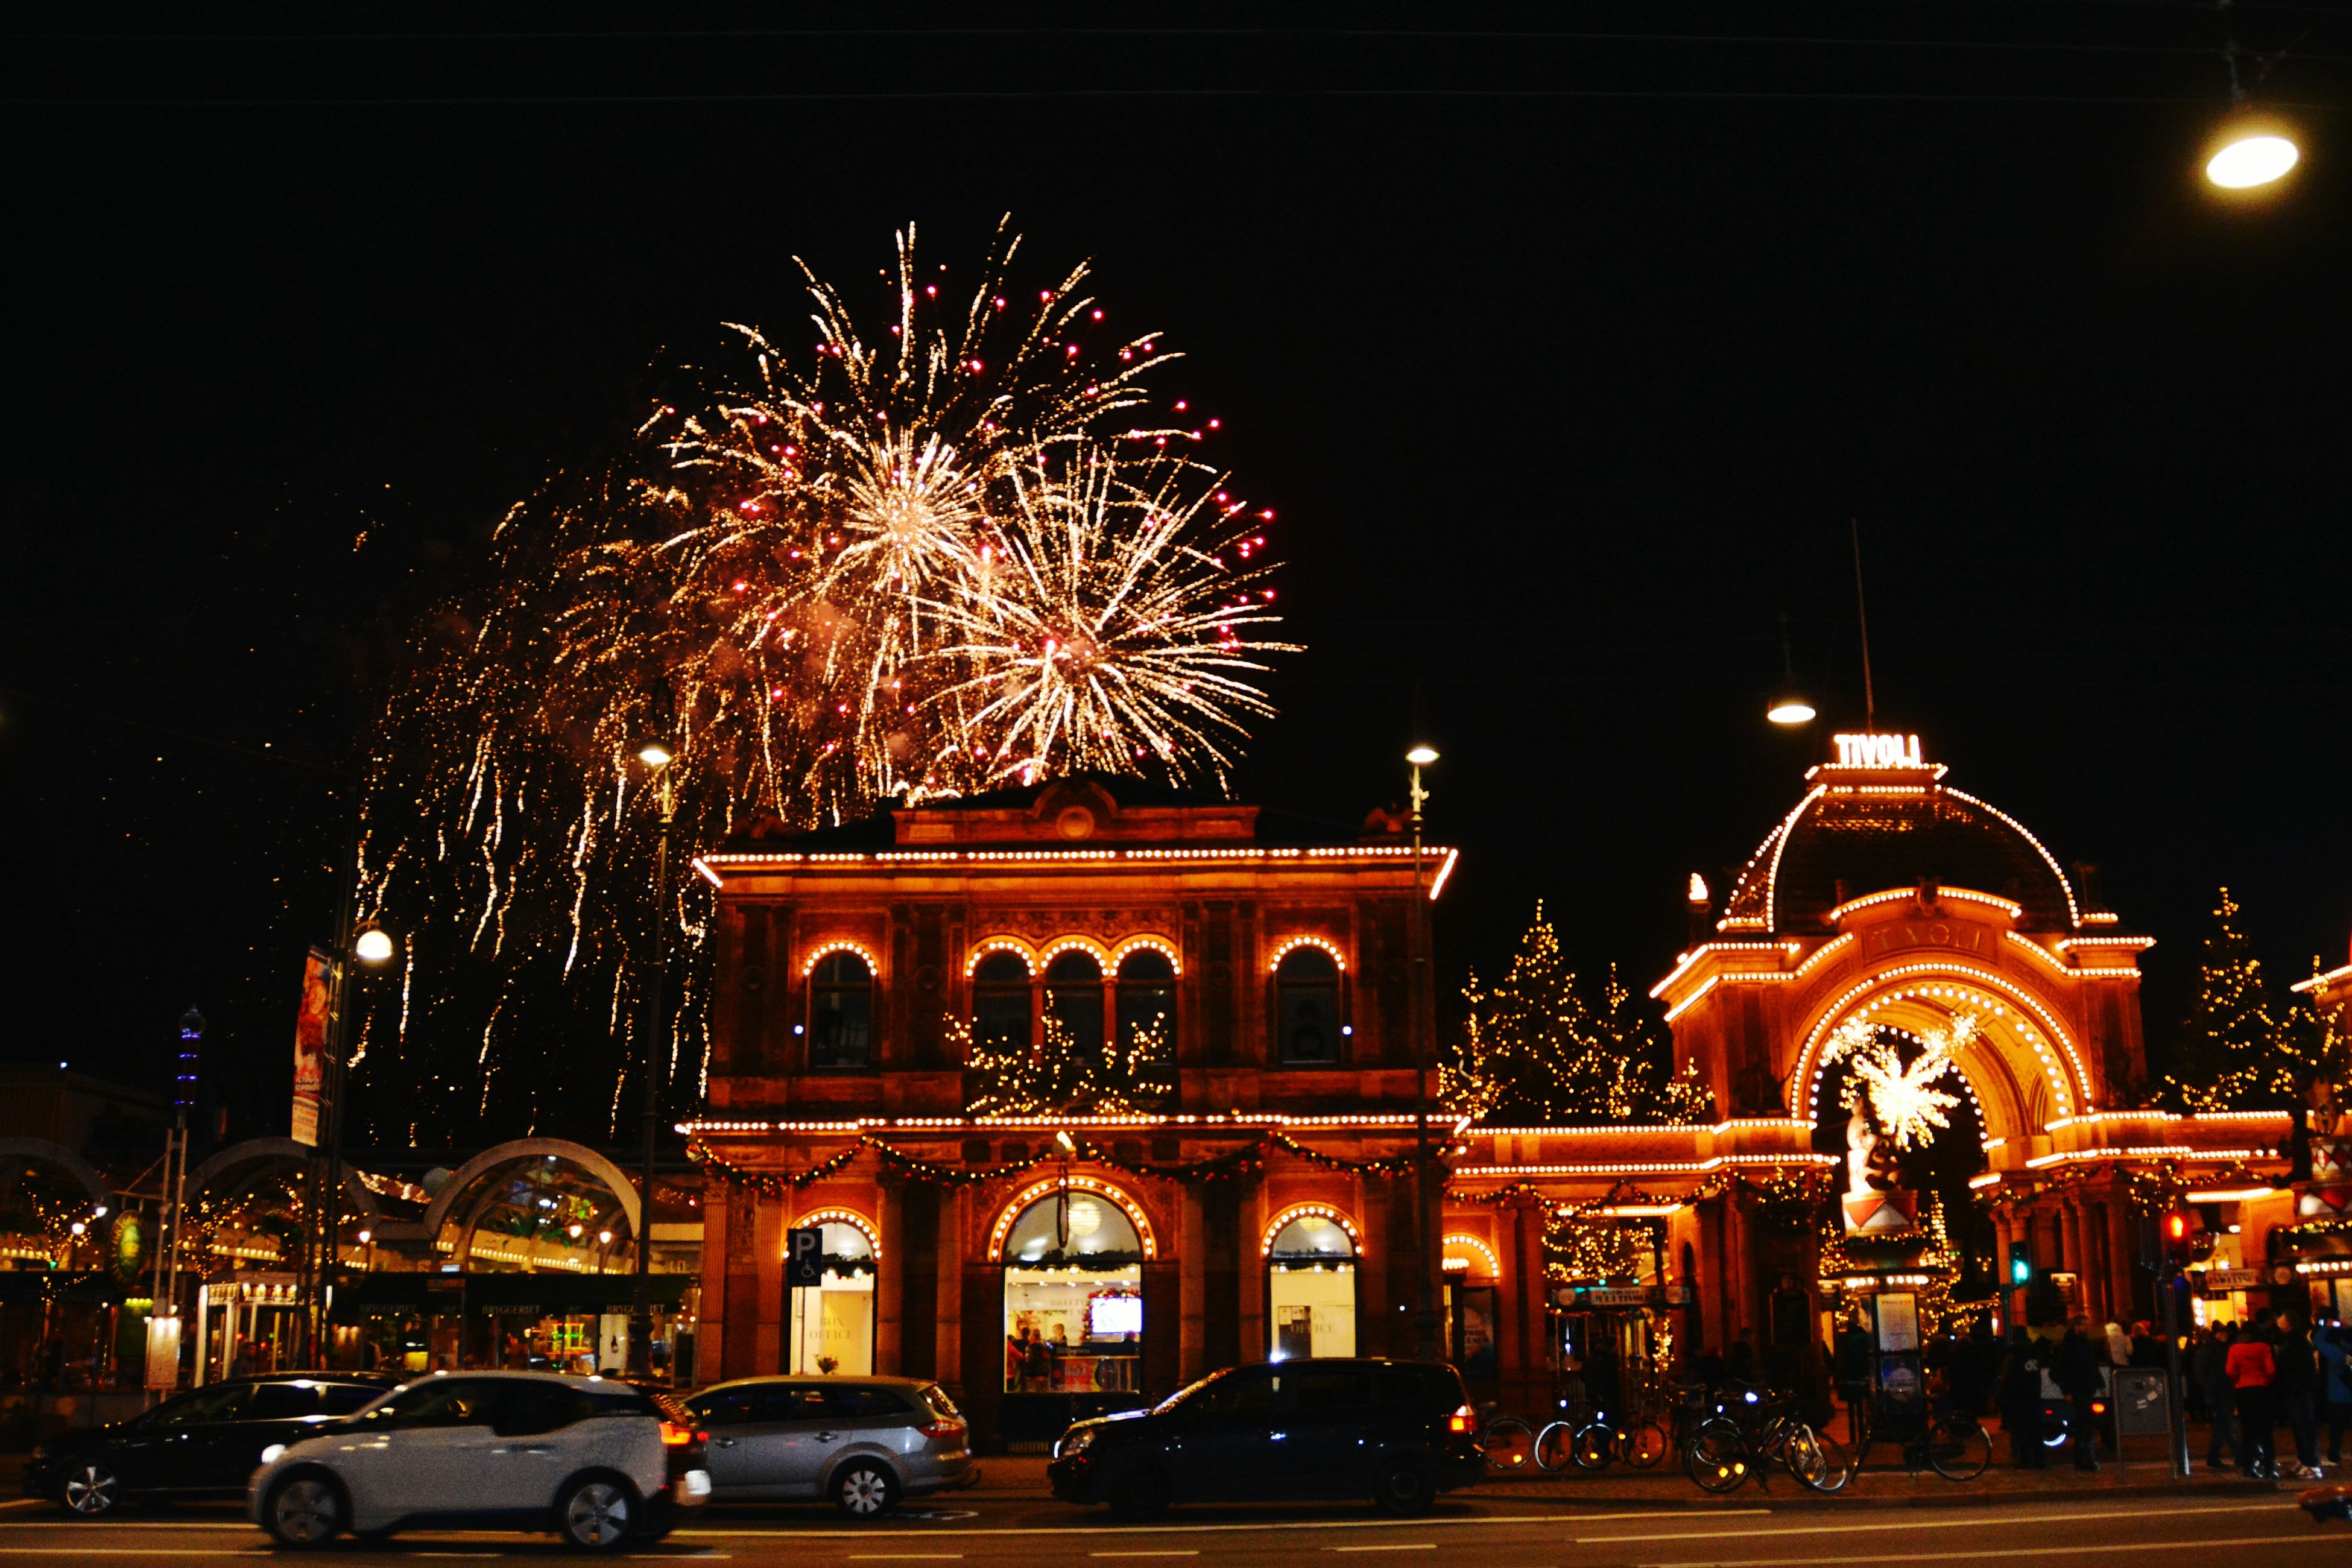 illuminated, night, long exposure, building exterior, car, motion, firework display, land vehicle, street, transportation, arts culture and entertainment, architecture, city, blurred motion, celebration, built structure, mode of transport, glowing, sky, exploding